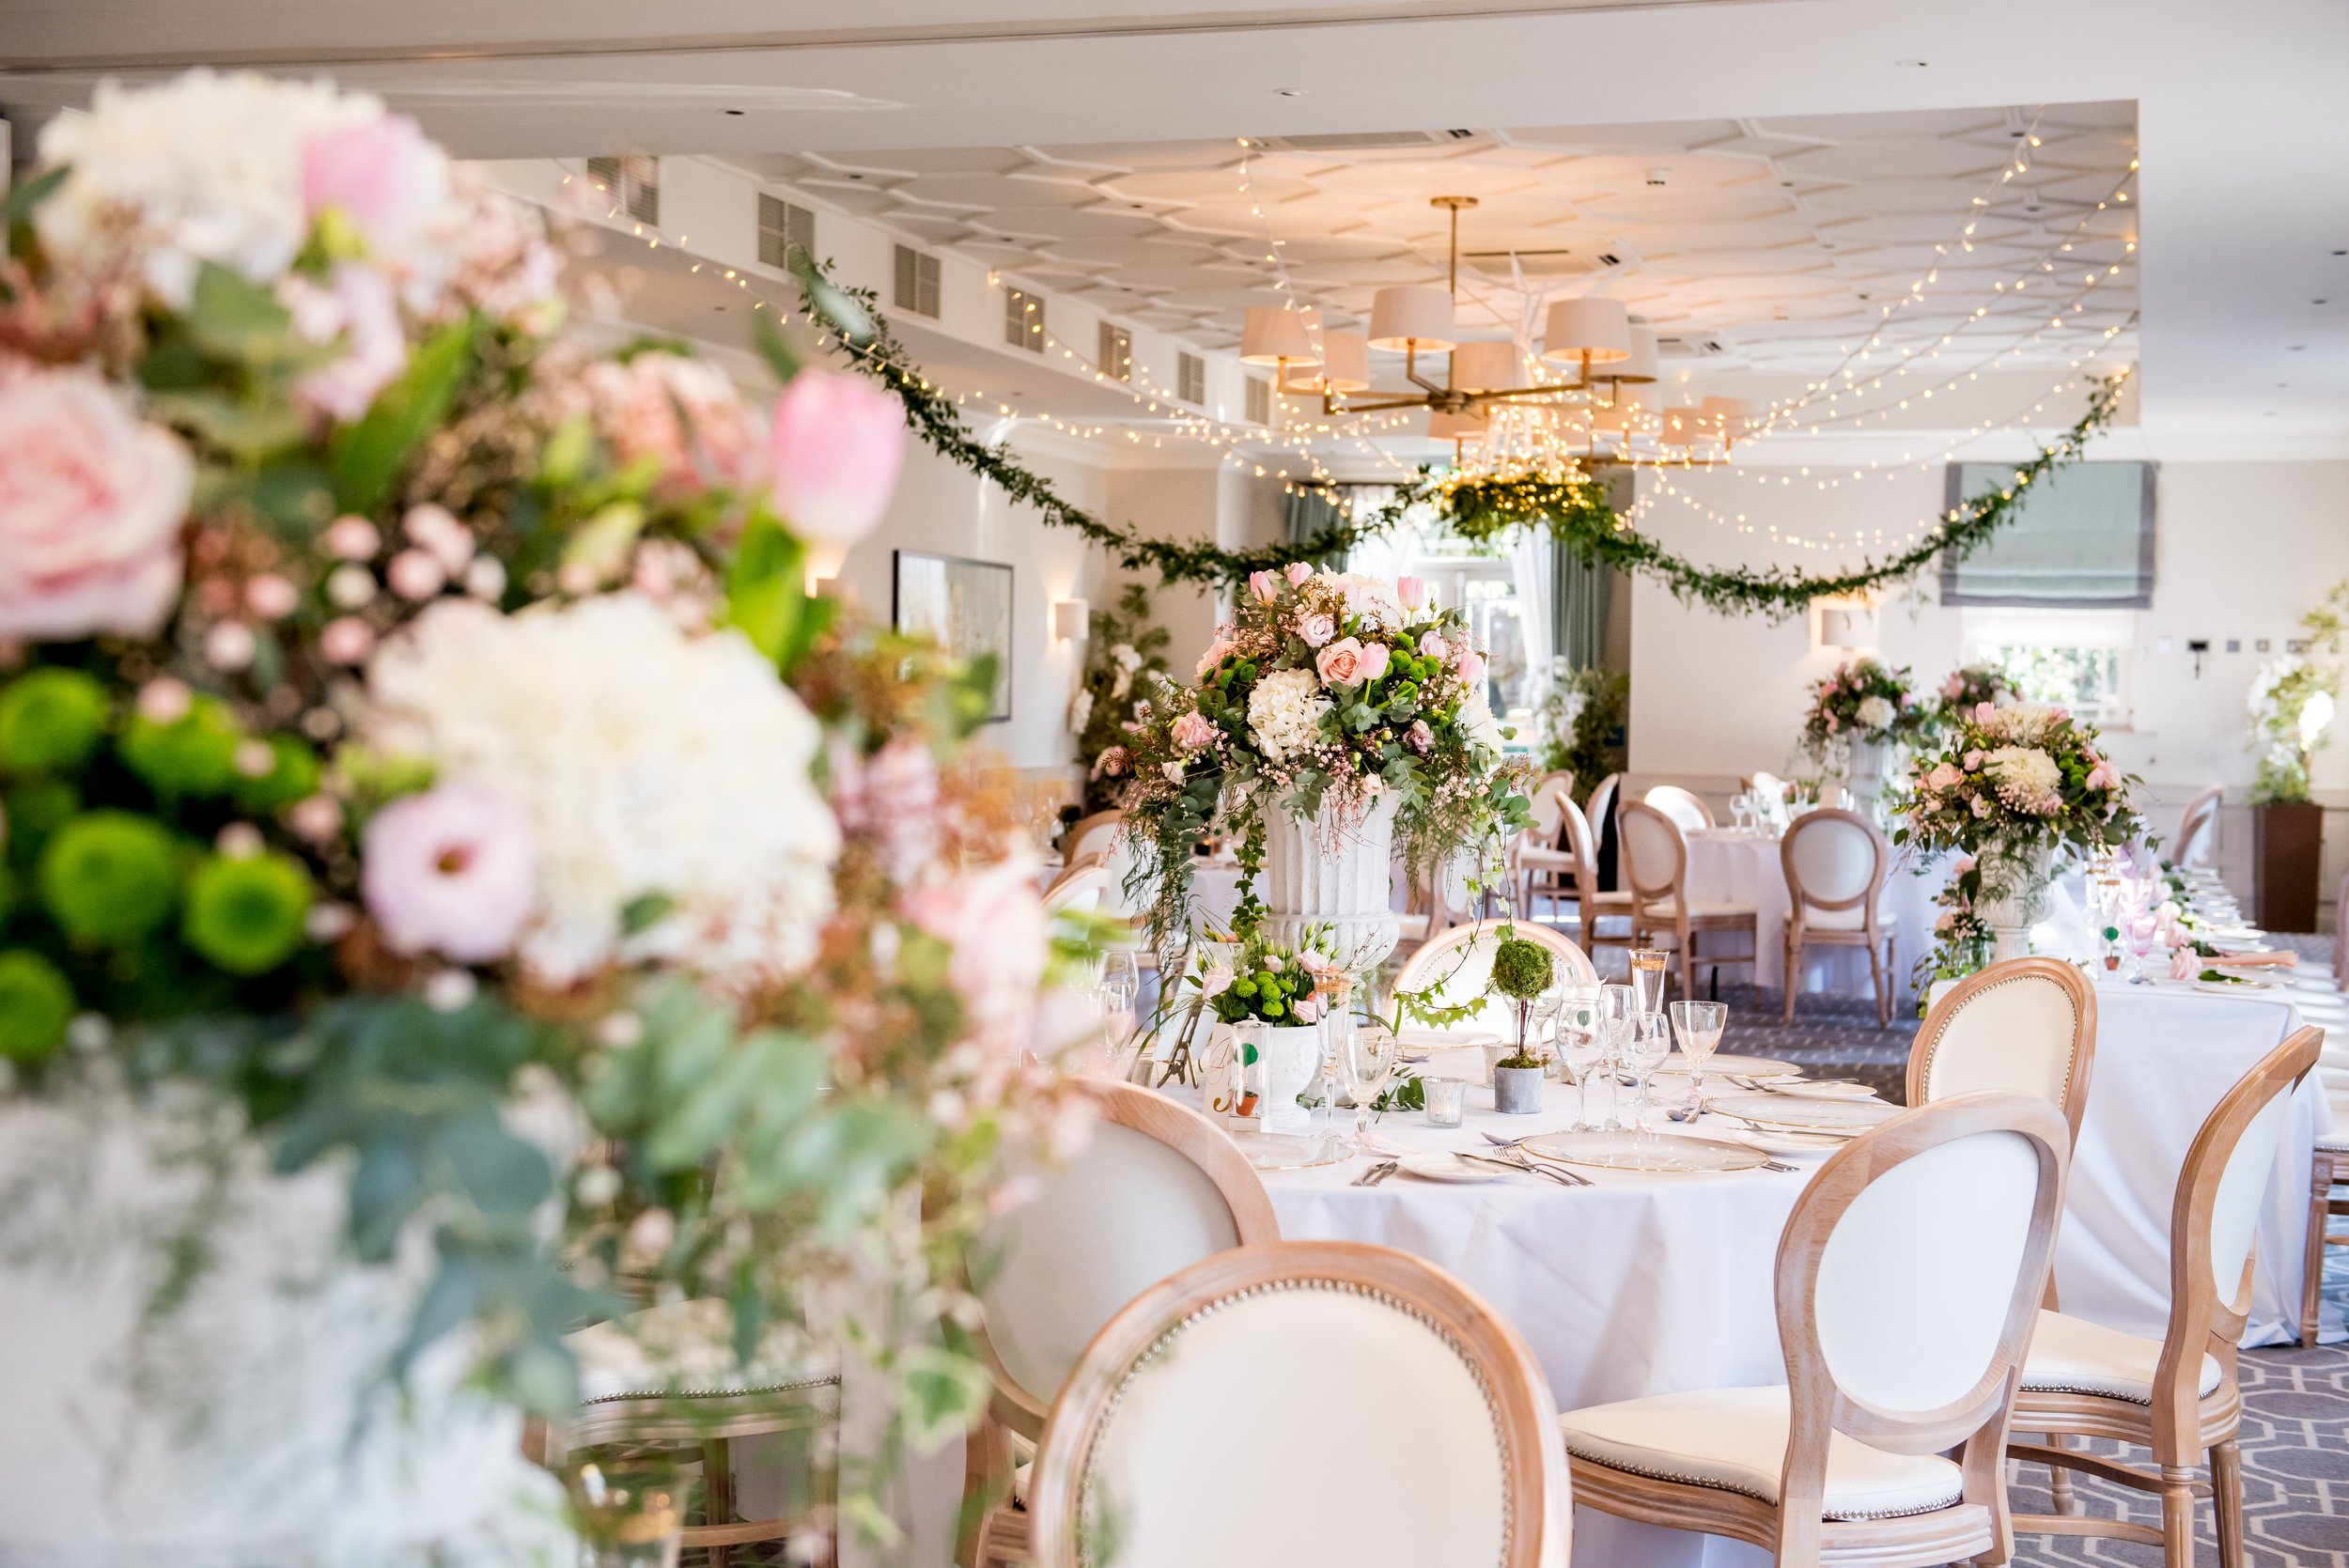 Hayley Bray Photography - Evelyn Suite at Wotton House Hotel